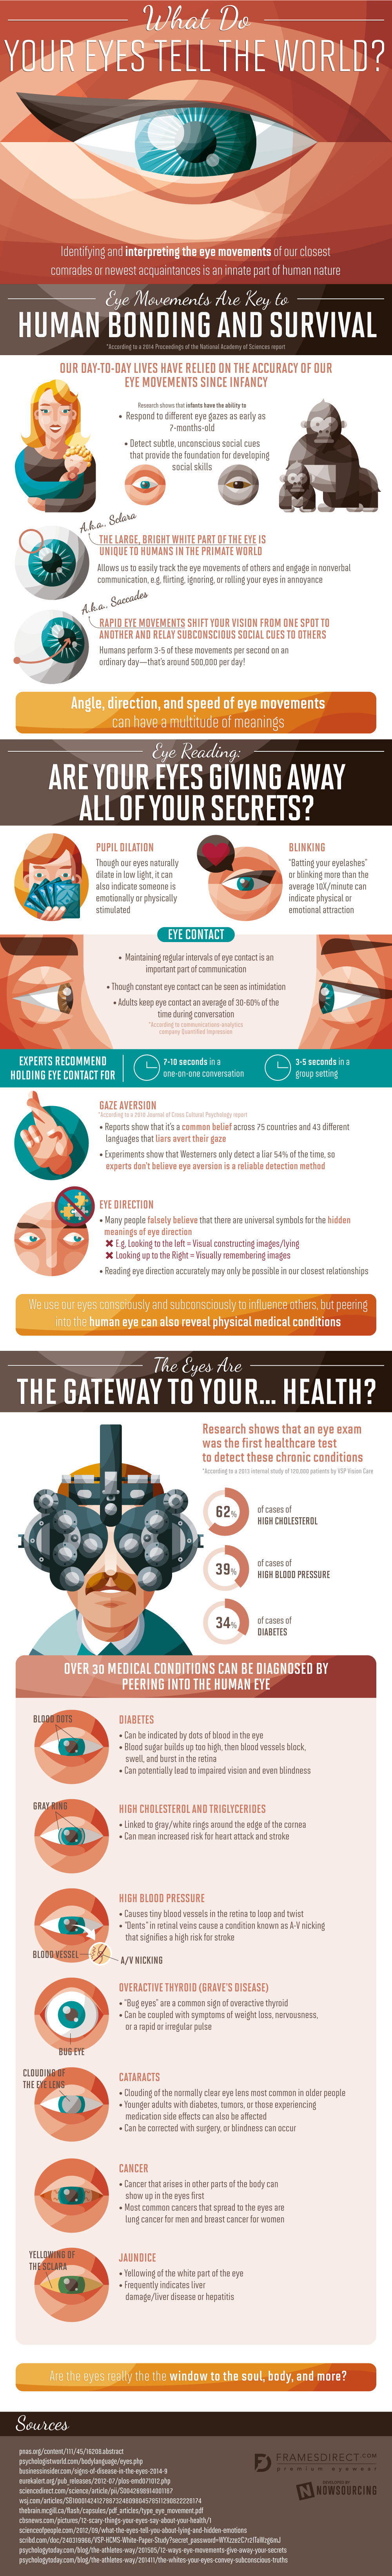 Eyes: Amazing Truths Behind The Mirror Of The Soul Infographic